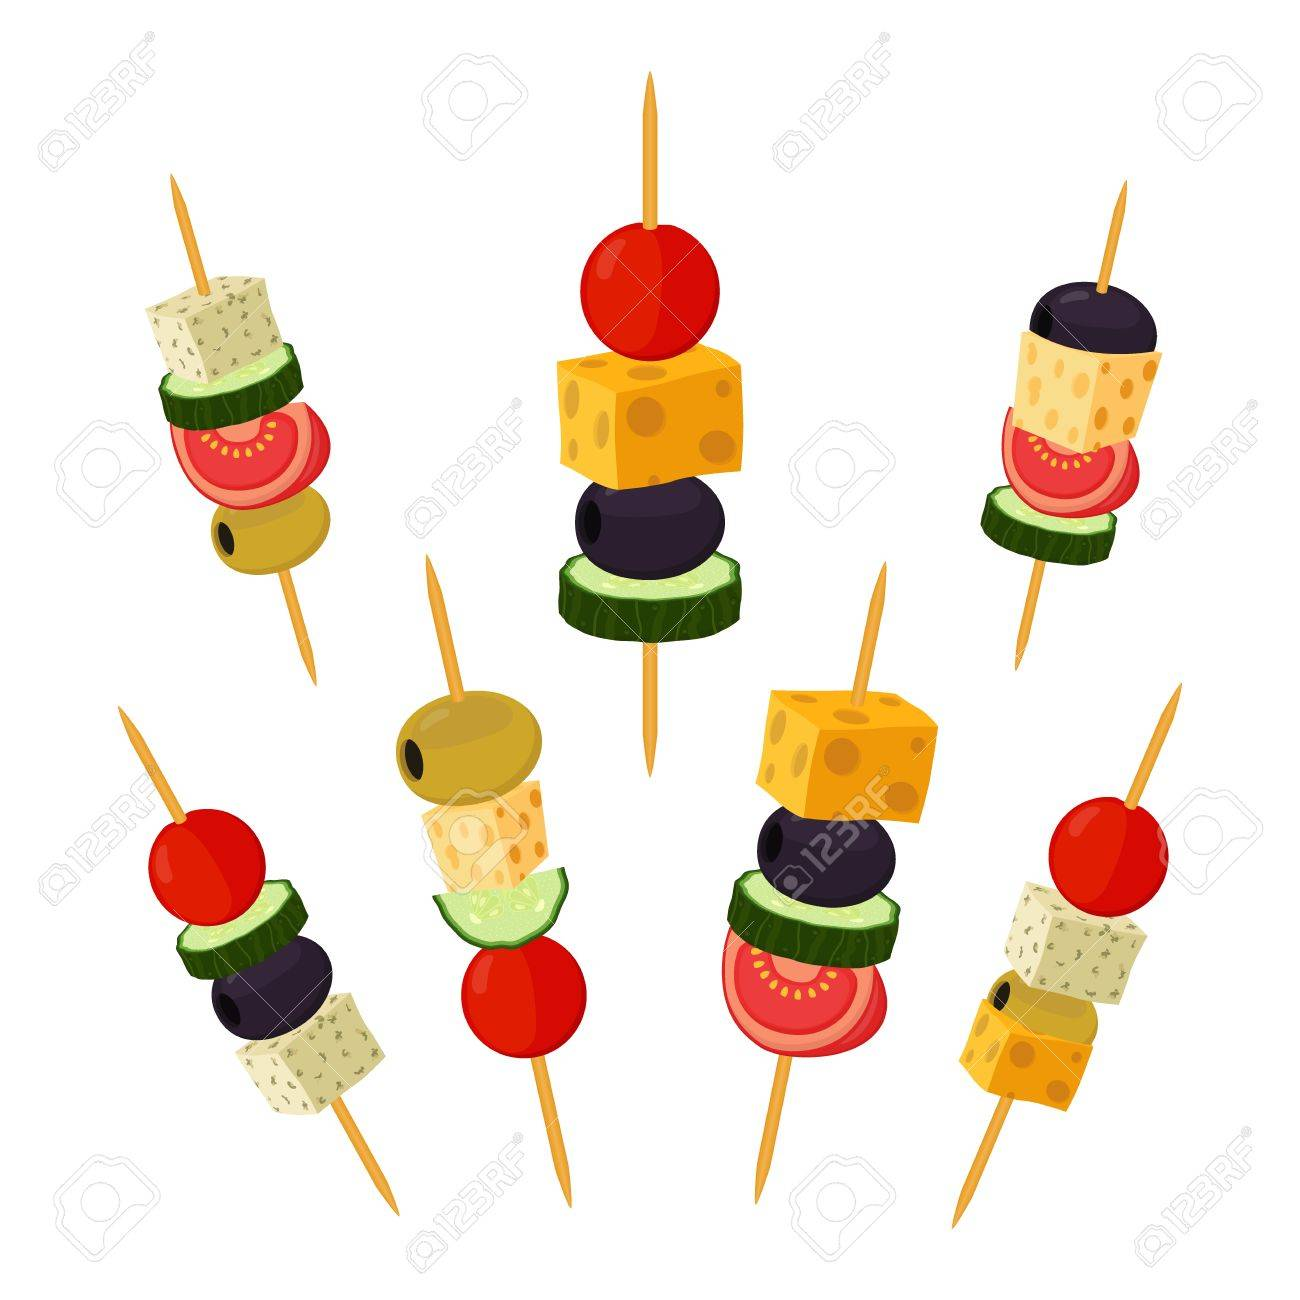 Appetizers clipart cute. Cliparts cartoon making the